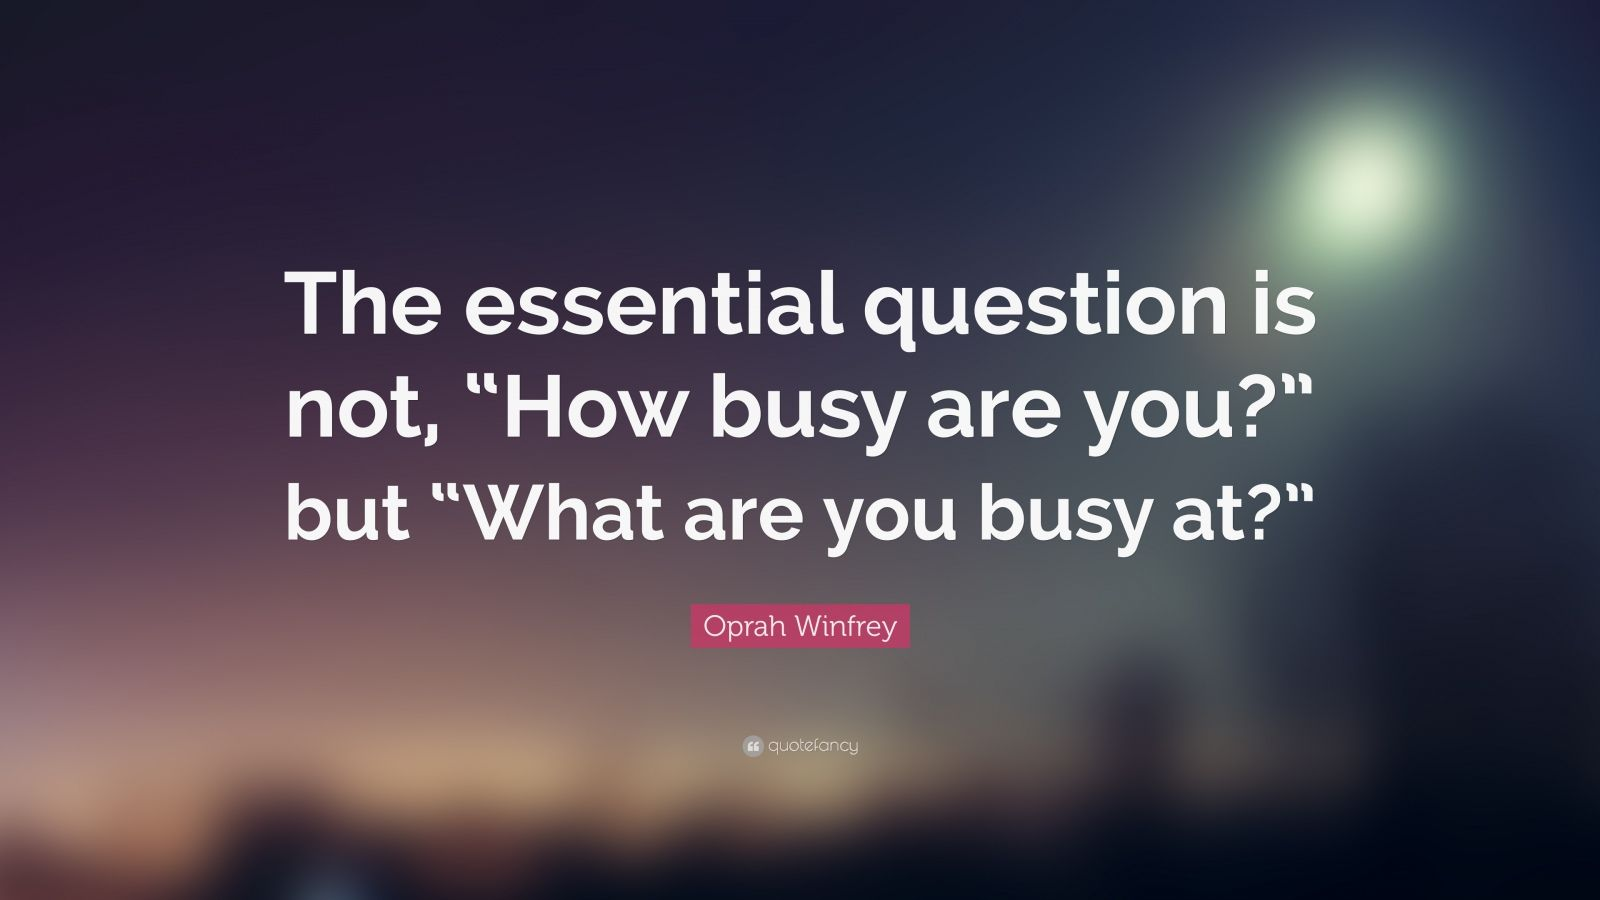 """Oprah Winfrey Quote: """"The essential question is not, """"How busy are you?"""" but """"What are you busy at?"""""""""""